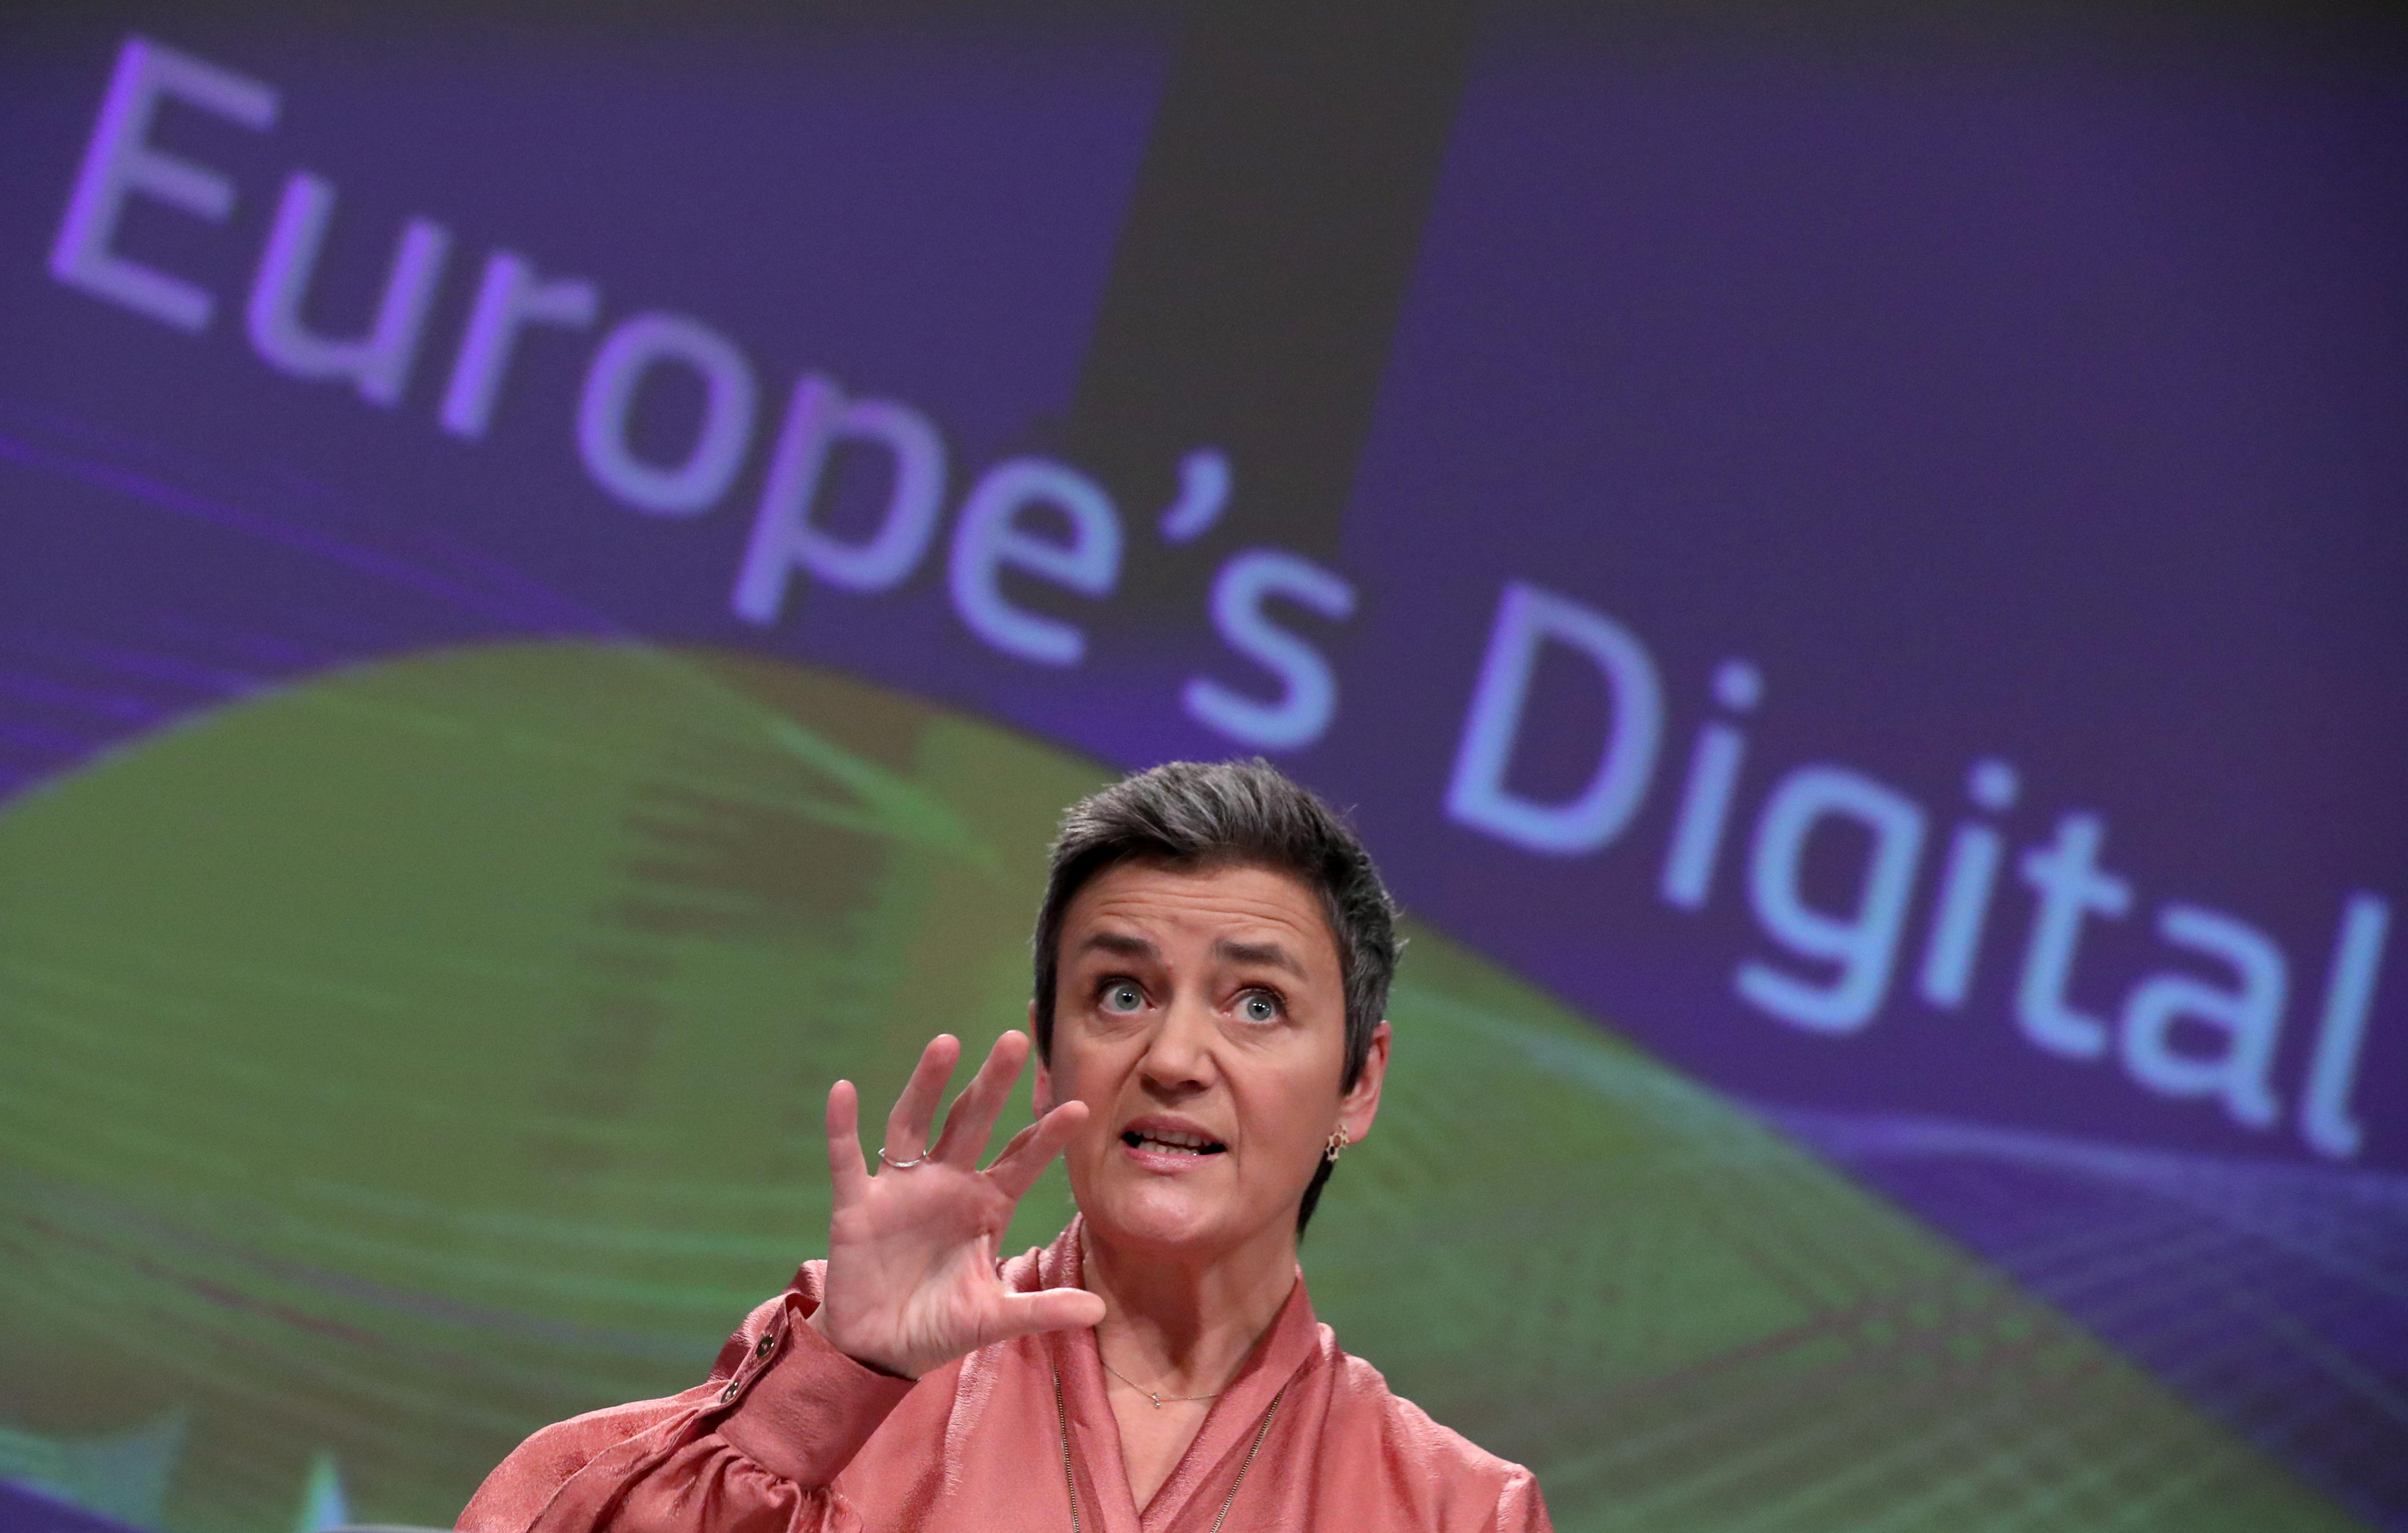 Tech reboot in store for EU as plans recovery from crisis